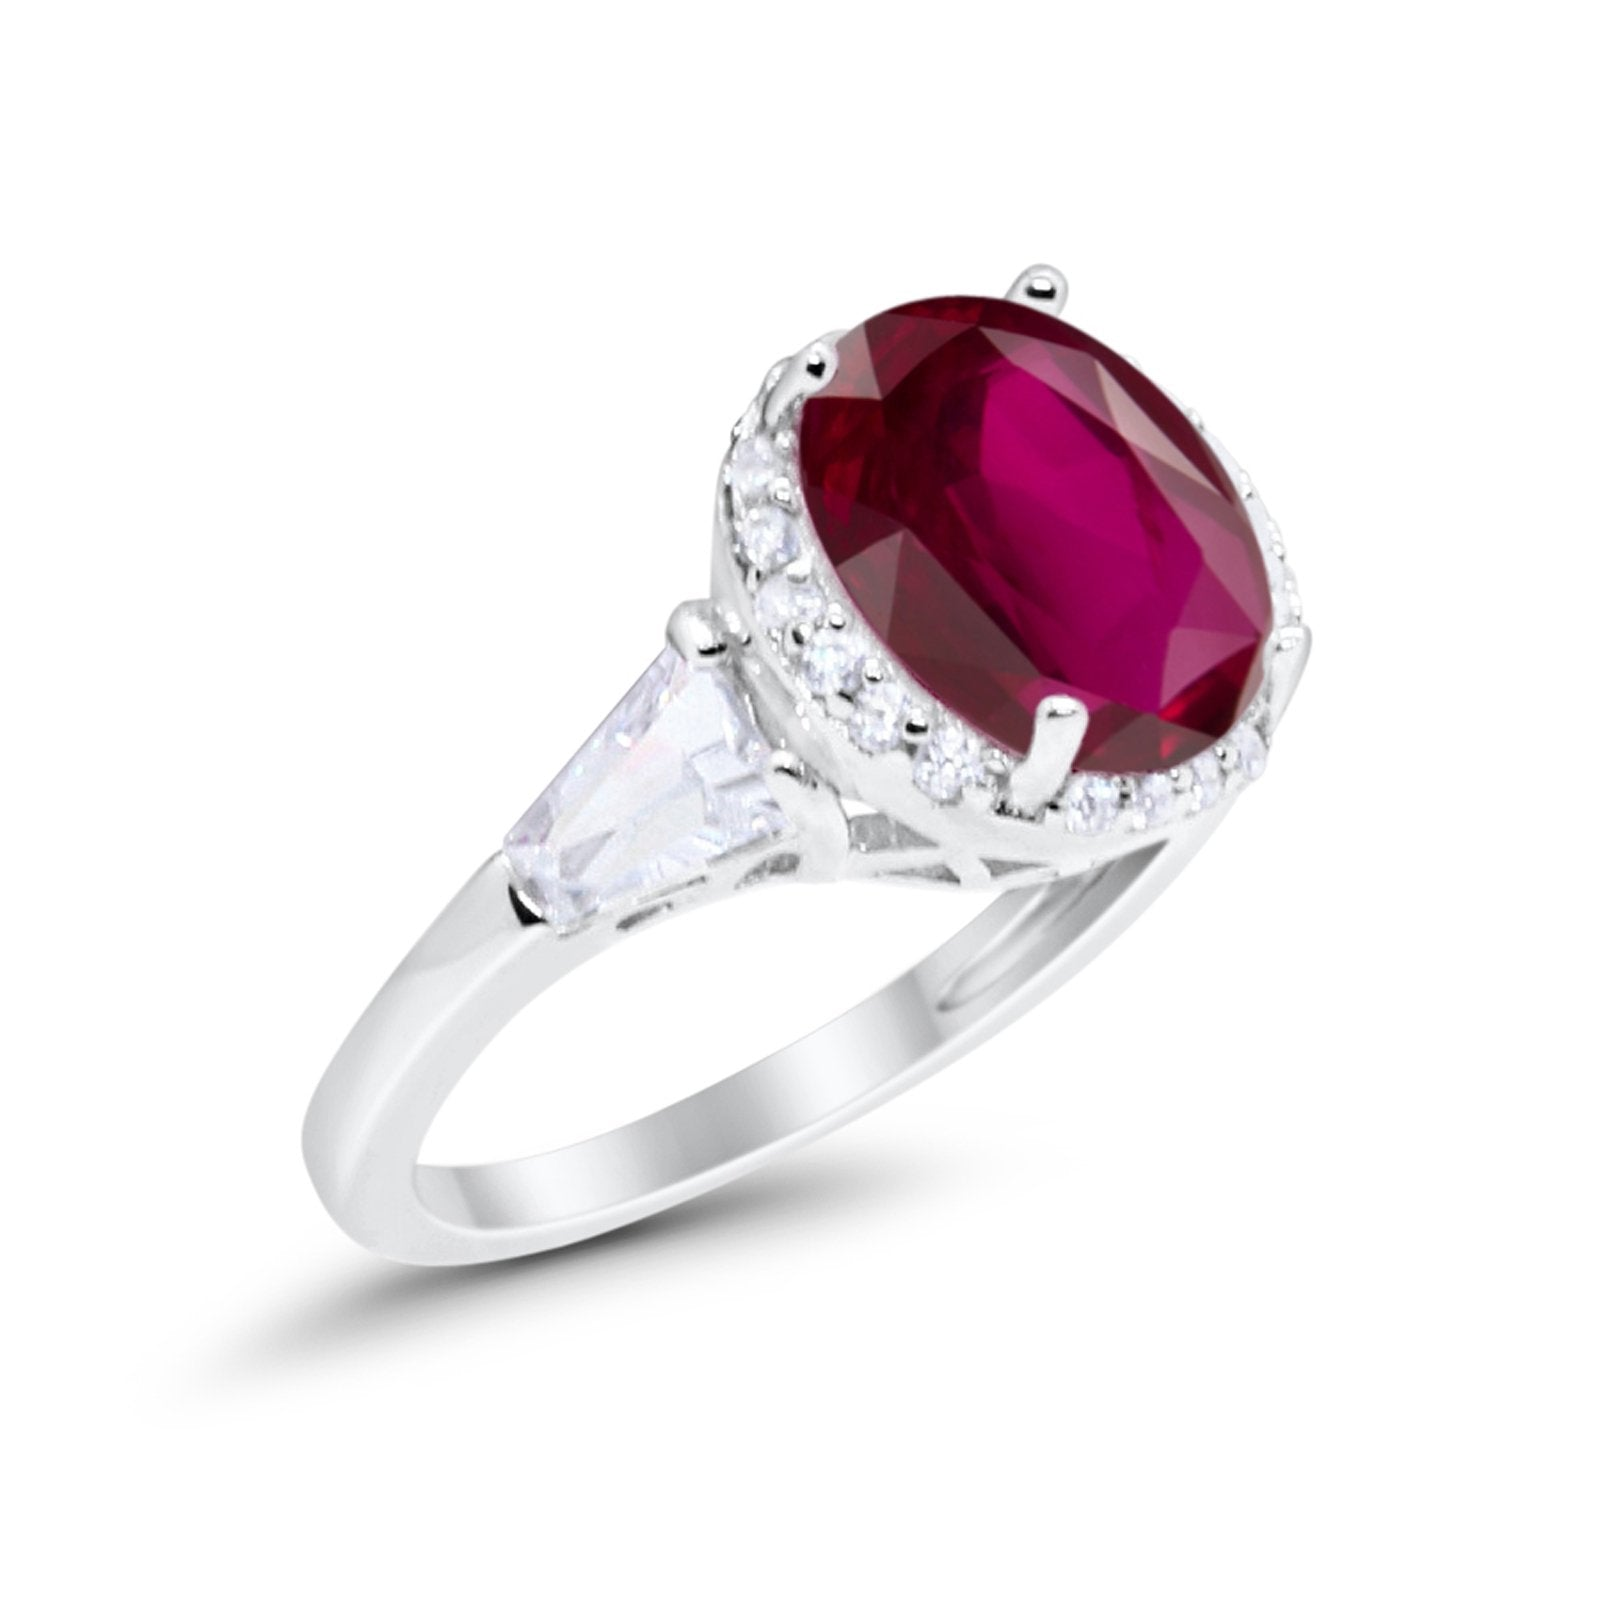 Oval Wedding Engagement Ring Baguette Round Simulated Ruby CZ 925 Sterling Silver